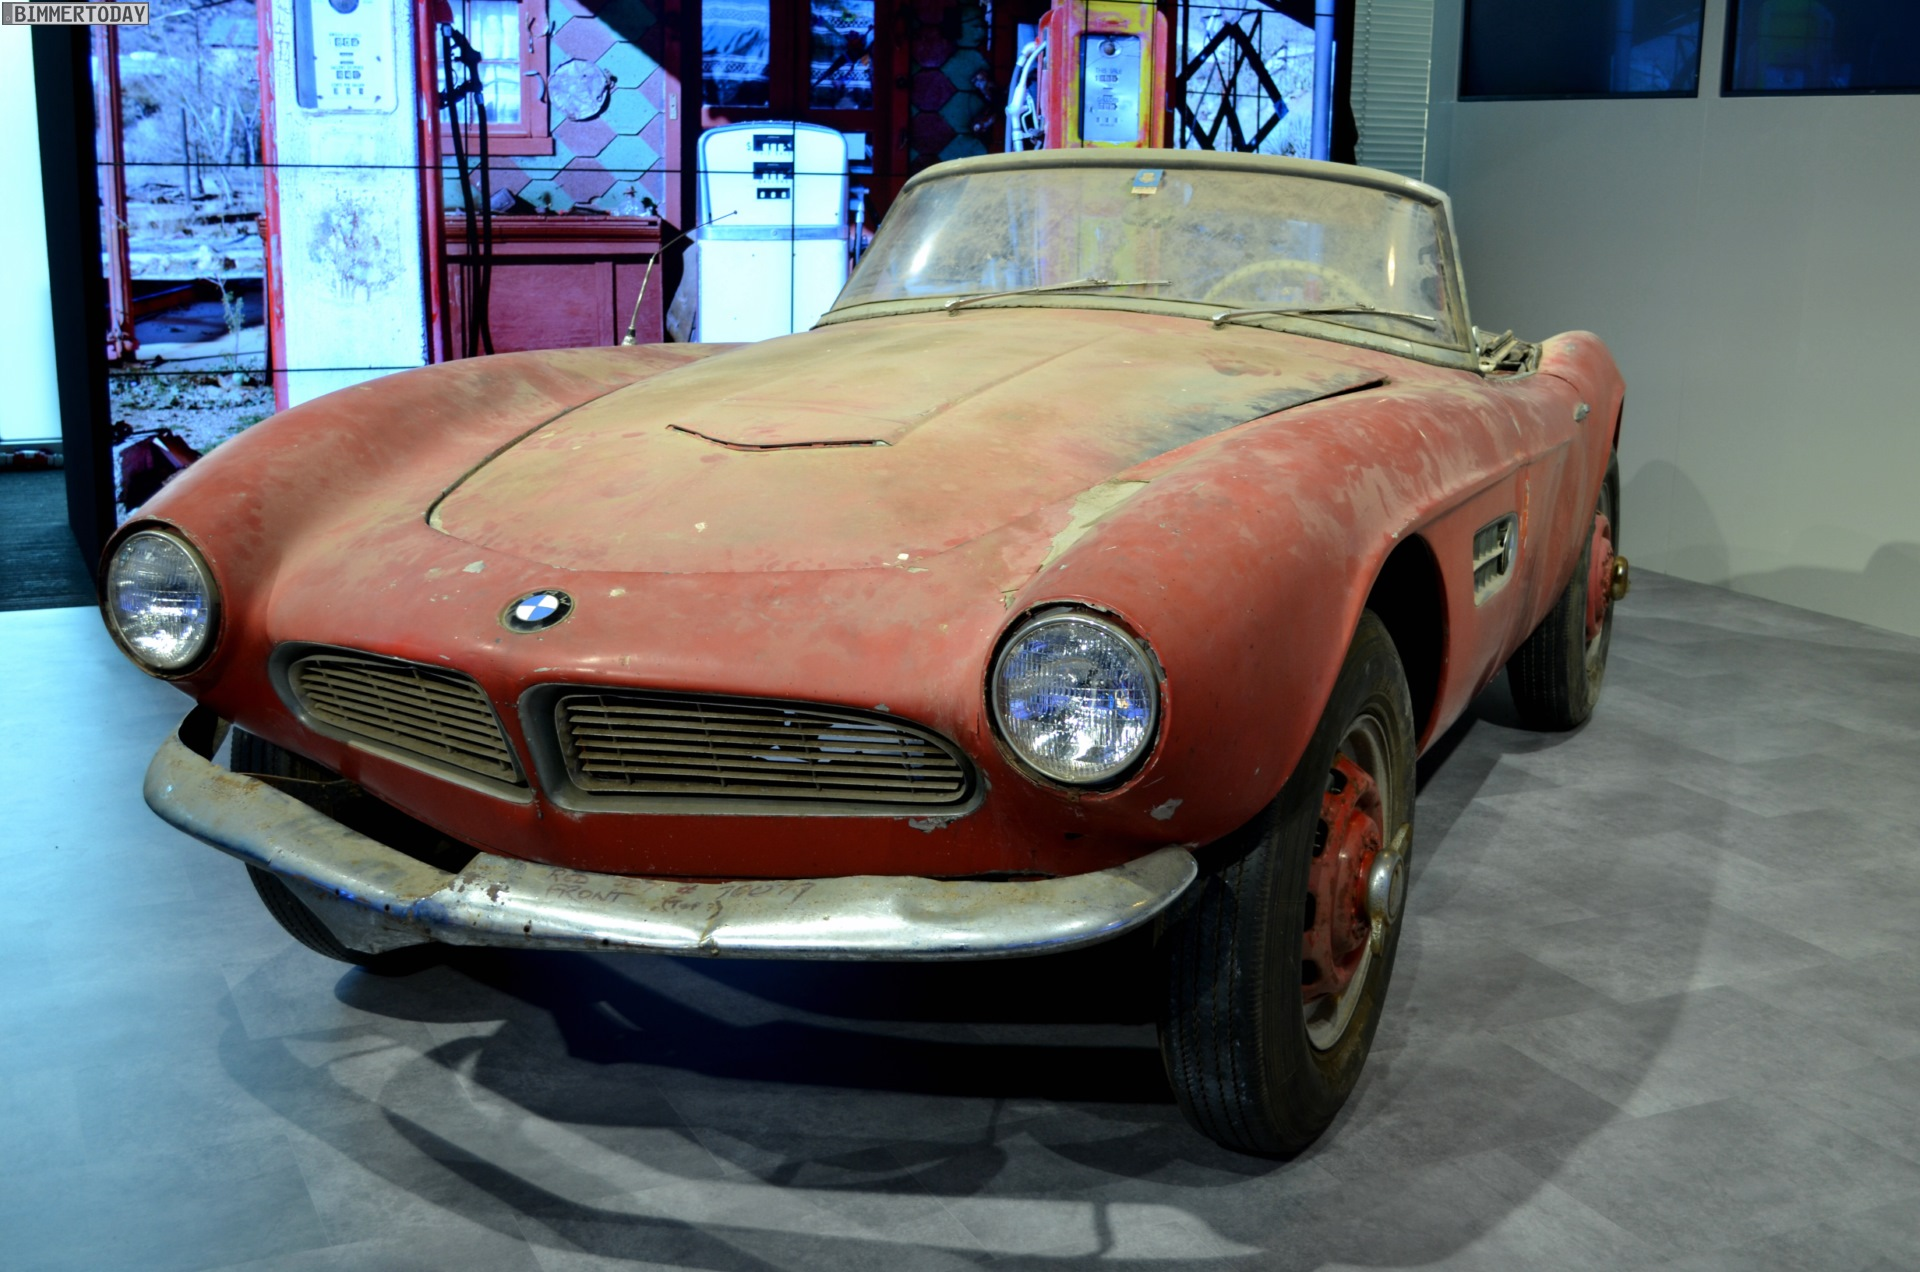 1957 BMW 507 Coupe   Transmission The BMW 507 coupe owned by the king of Rock and Roll  Elvis Presley  After  50 years since the cars last sighting   it was found abandoned in a barn